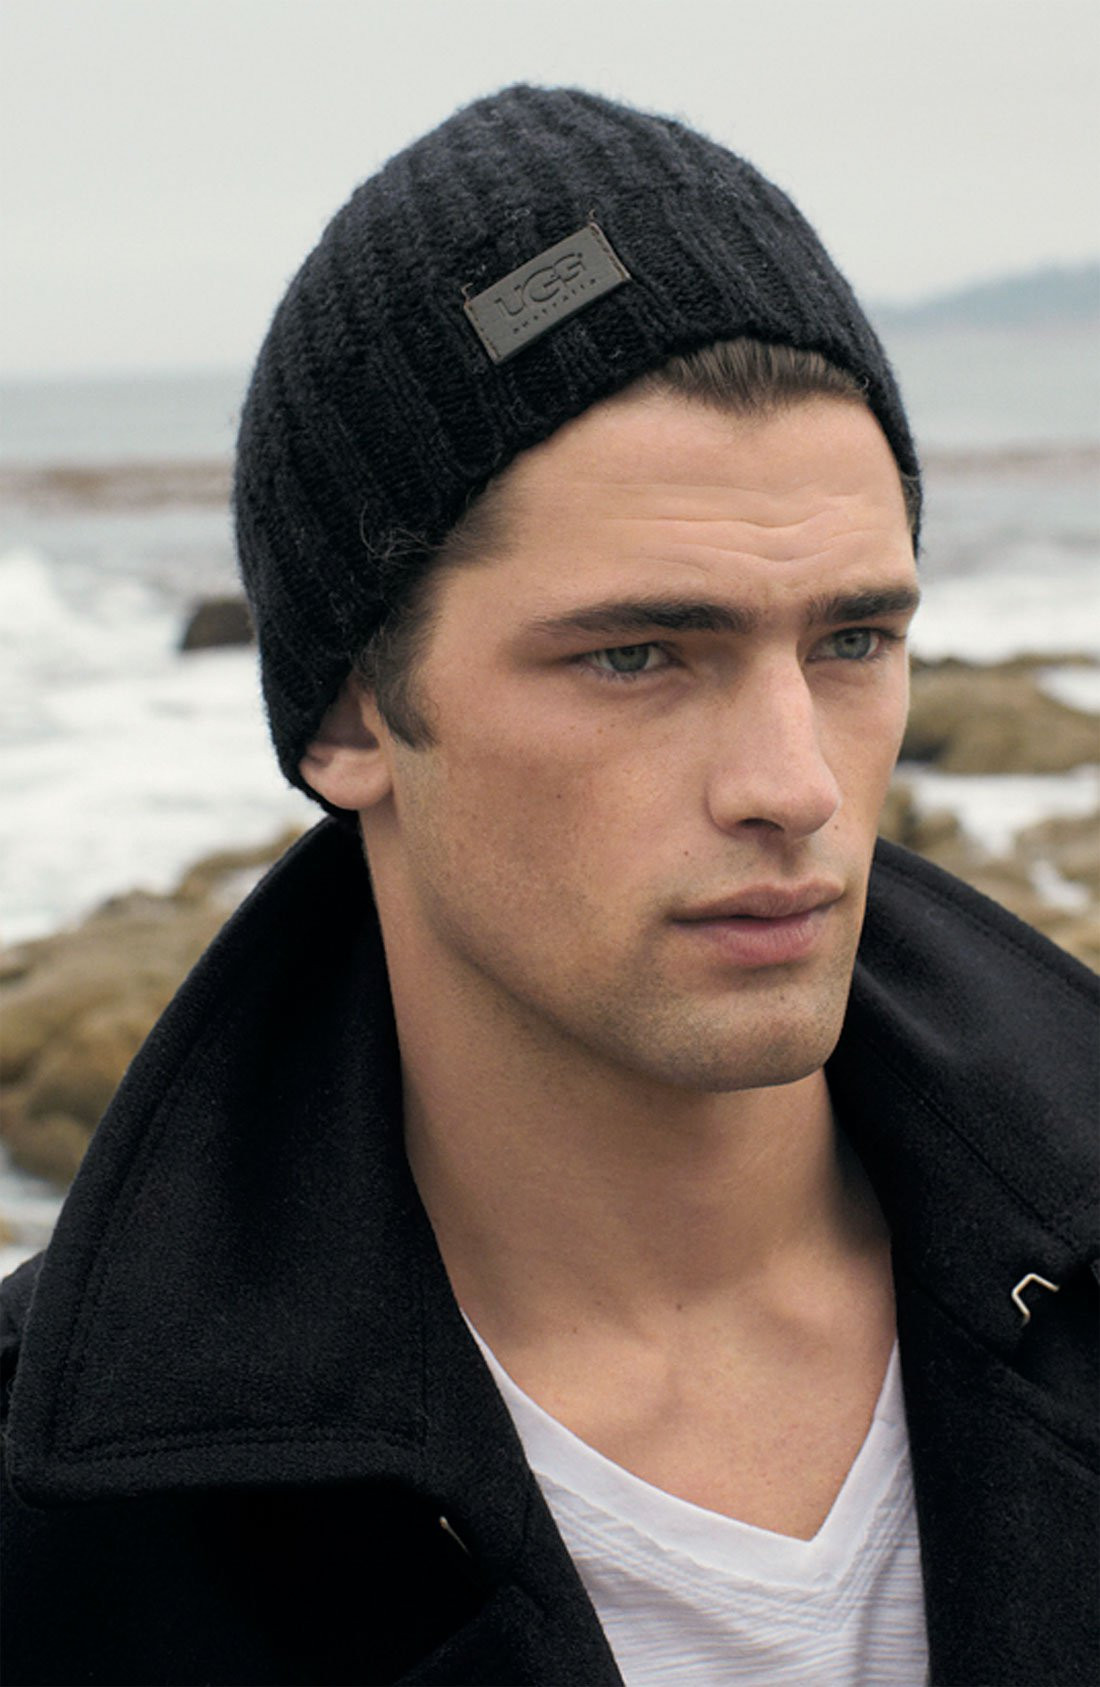 Beanies for Men Lovely How to Wear A Beanie for Guys Of Amazing 47 Images Beanies for Men